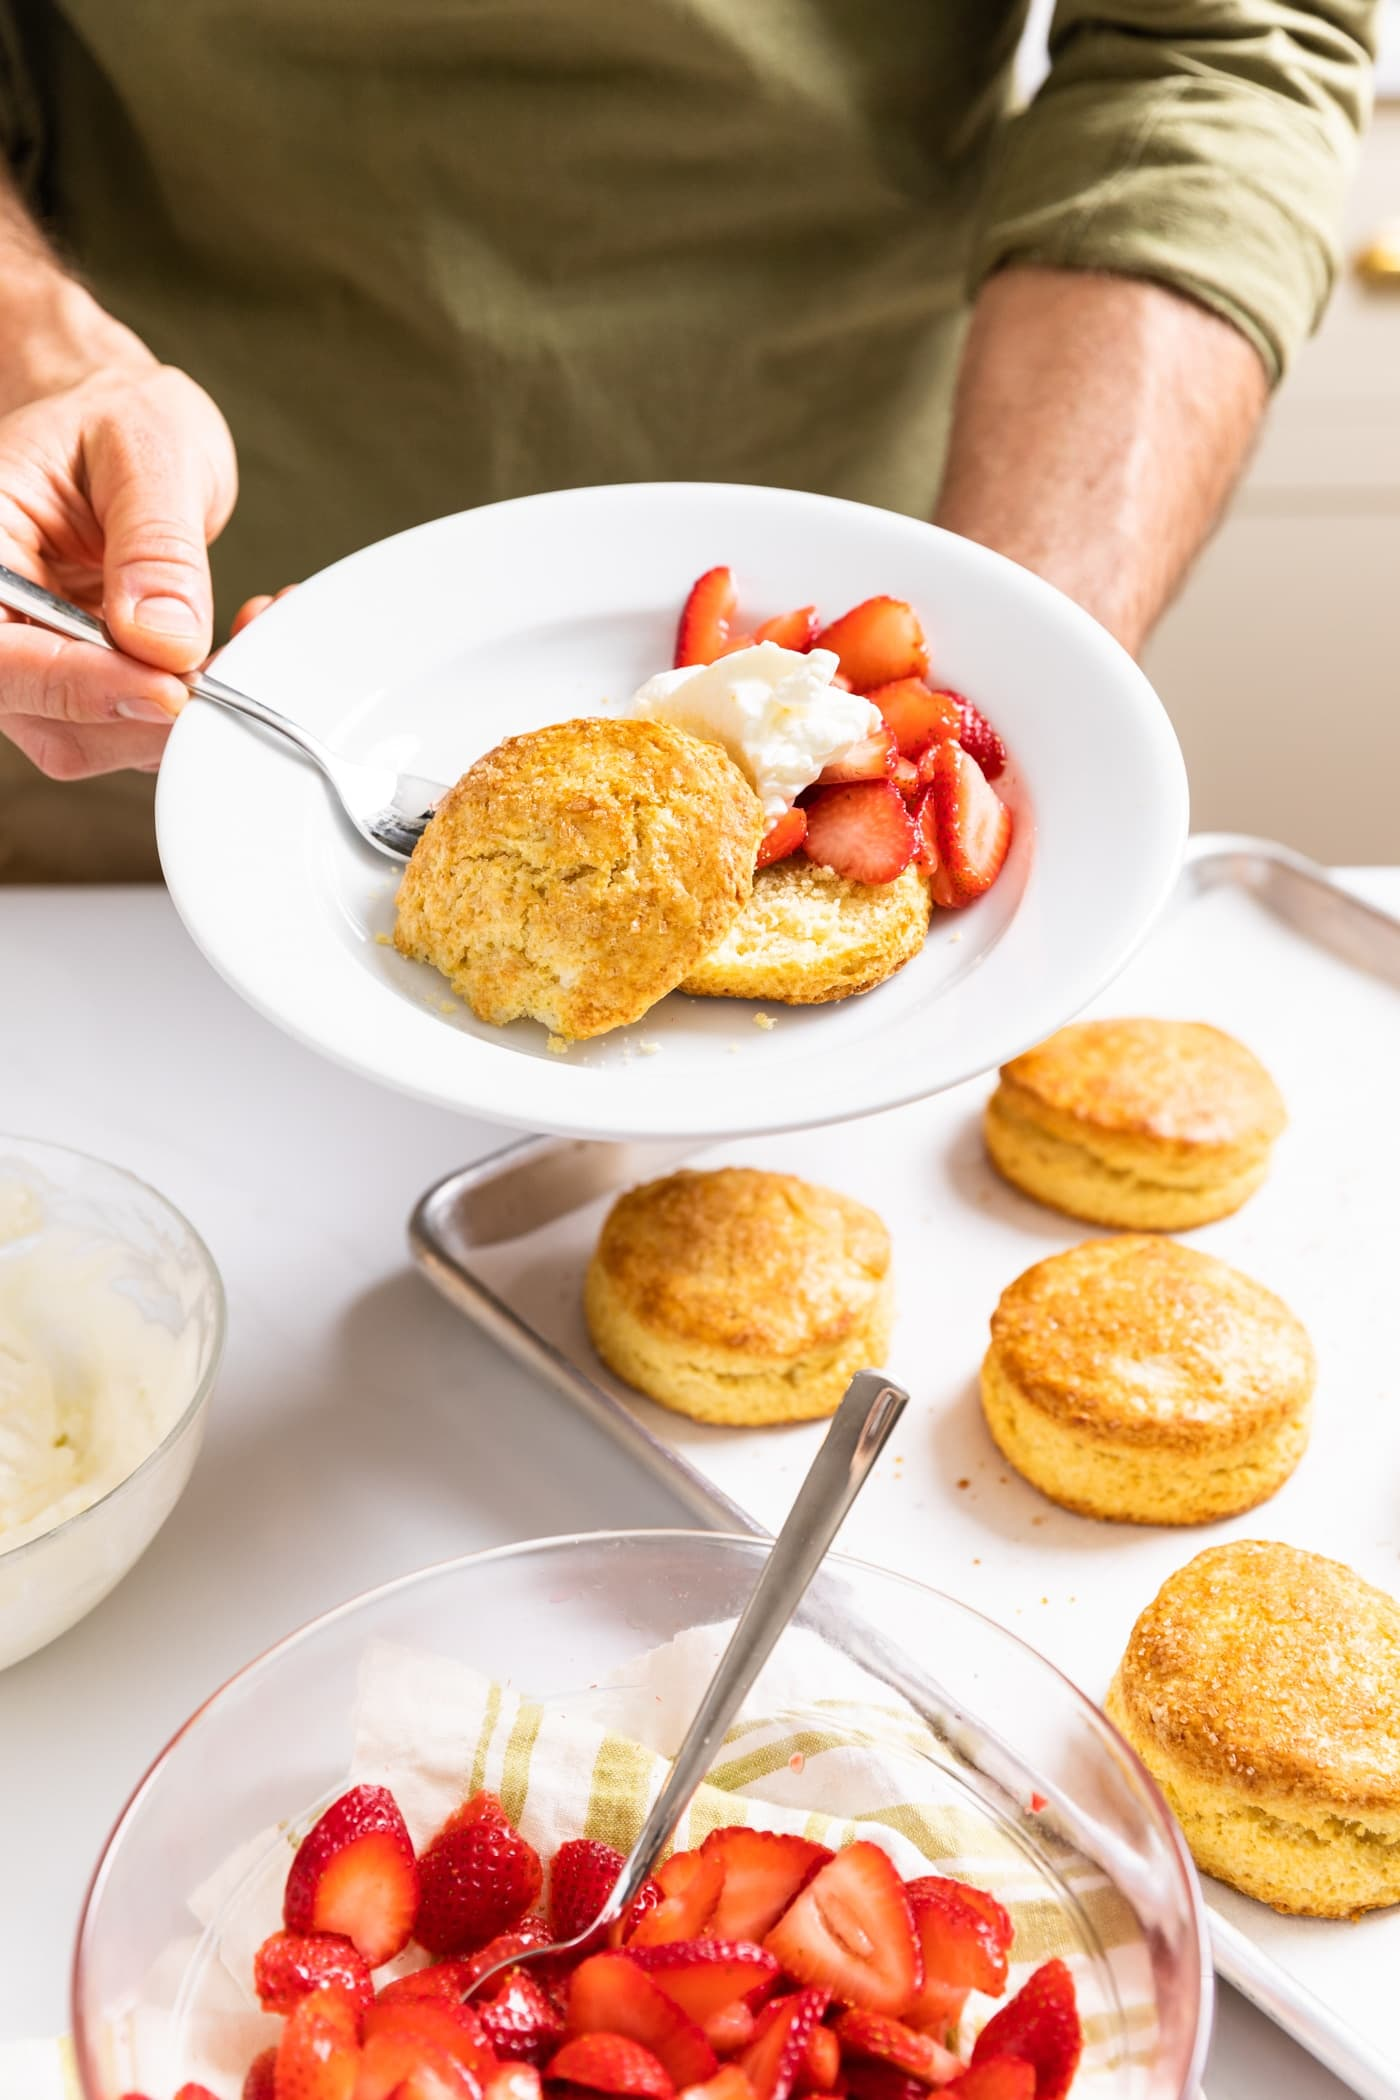 Two hands holding a white plate with yellow biscuit and strawberries topped with whipped cream with rest of components sitting around on countertop